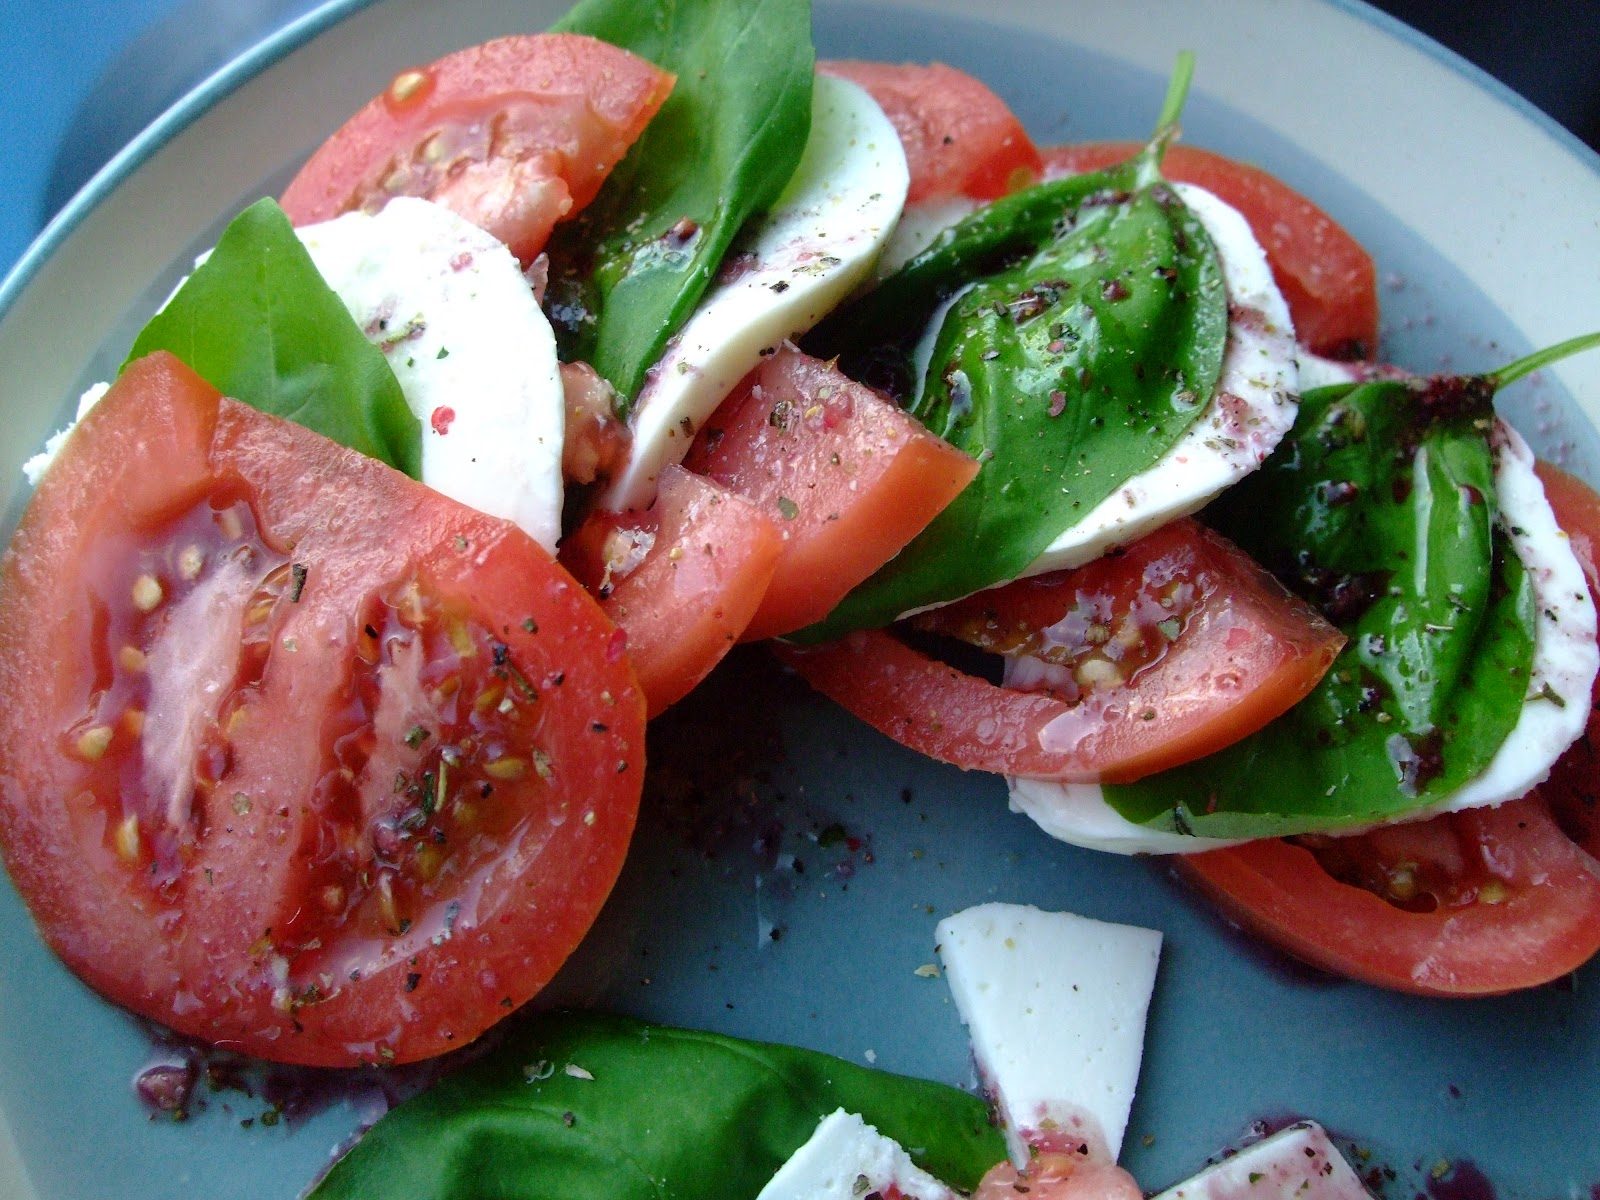 my homemade caprese salad with red wine vinaigrette